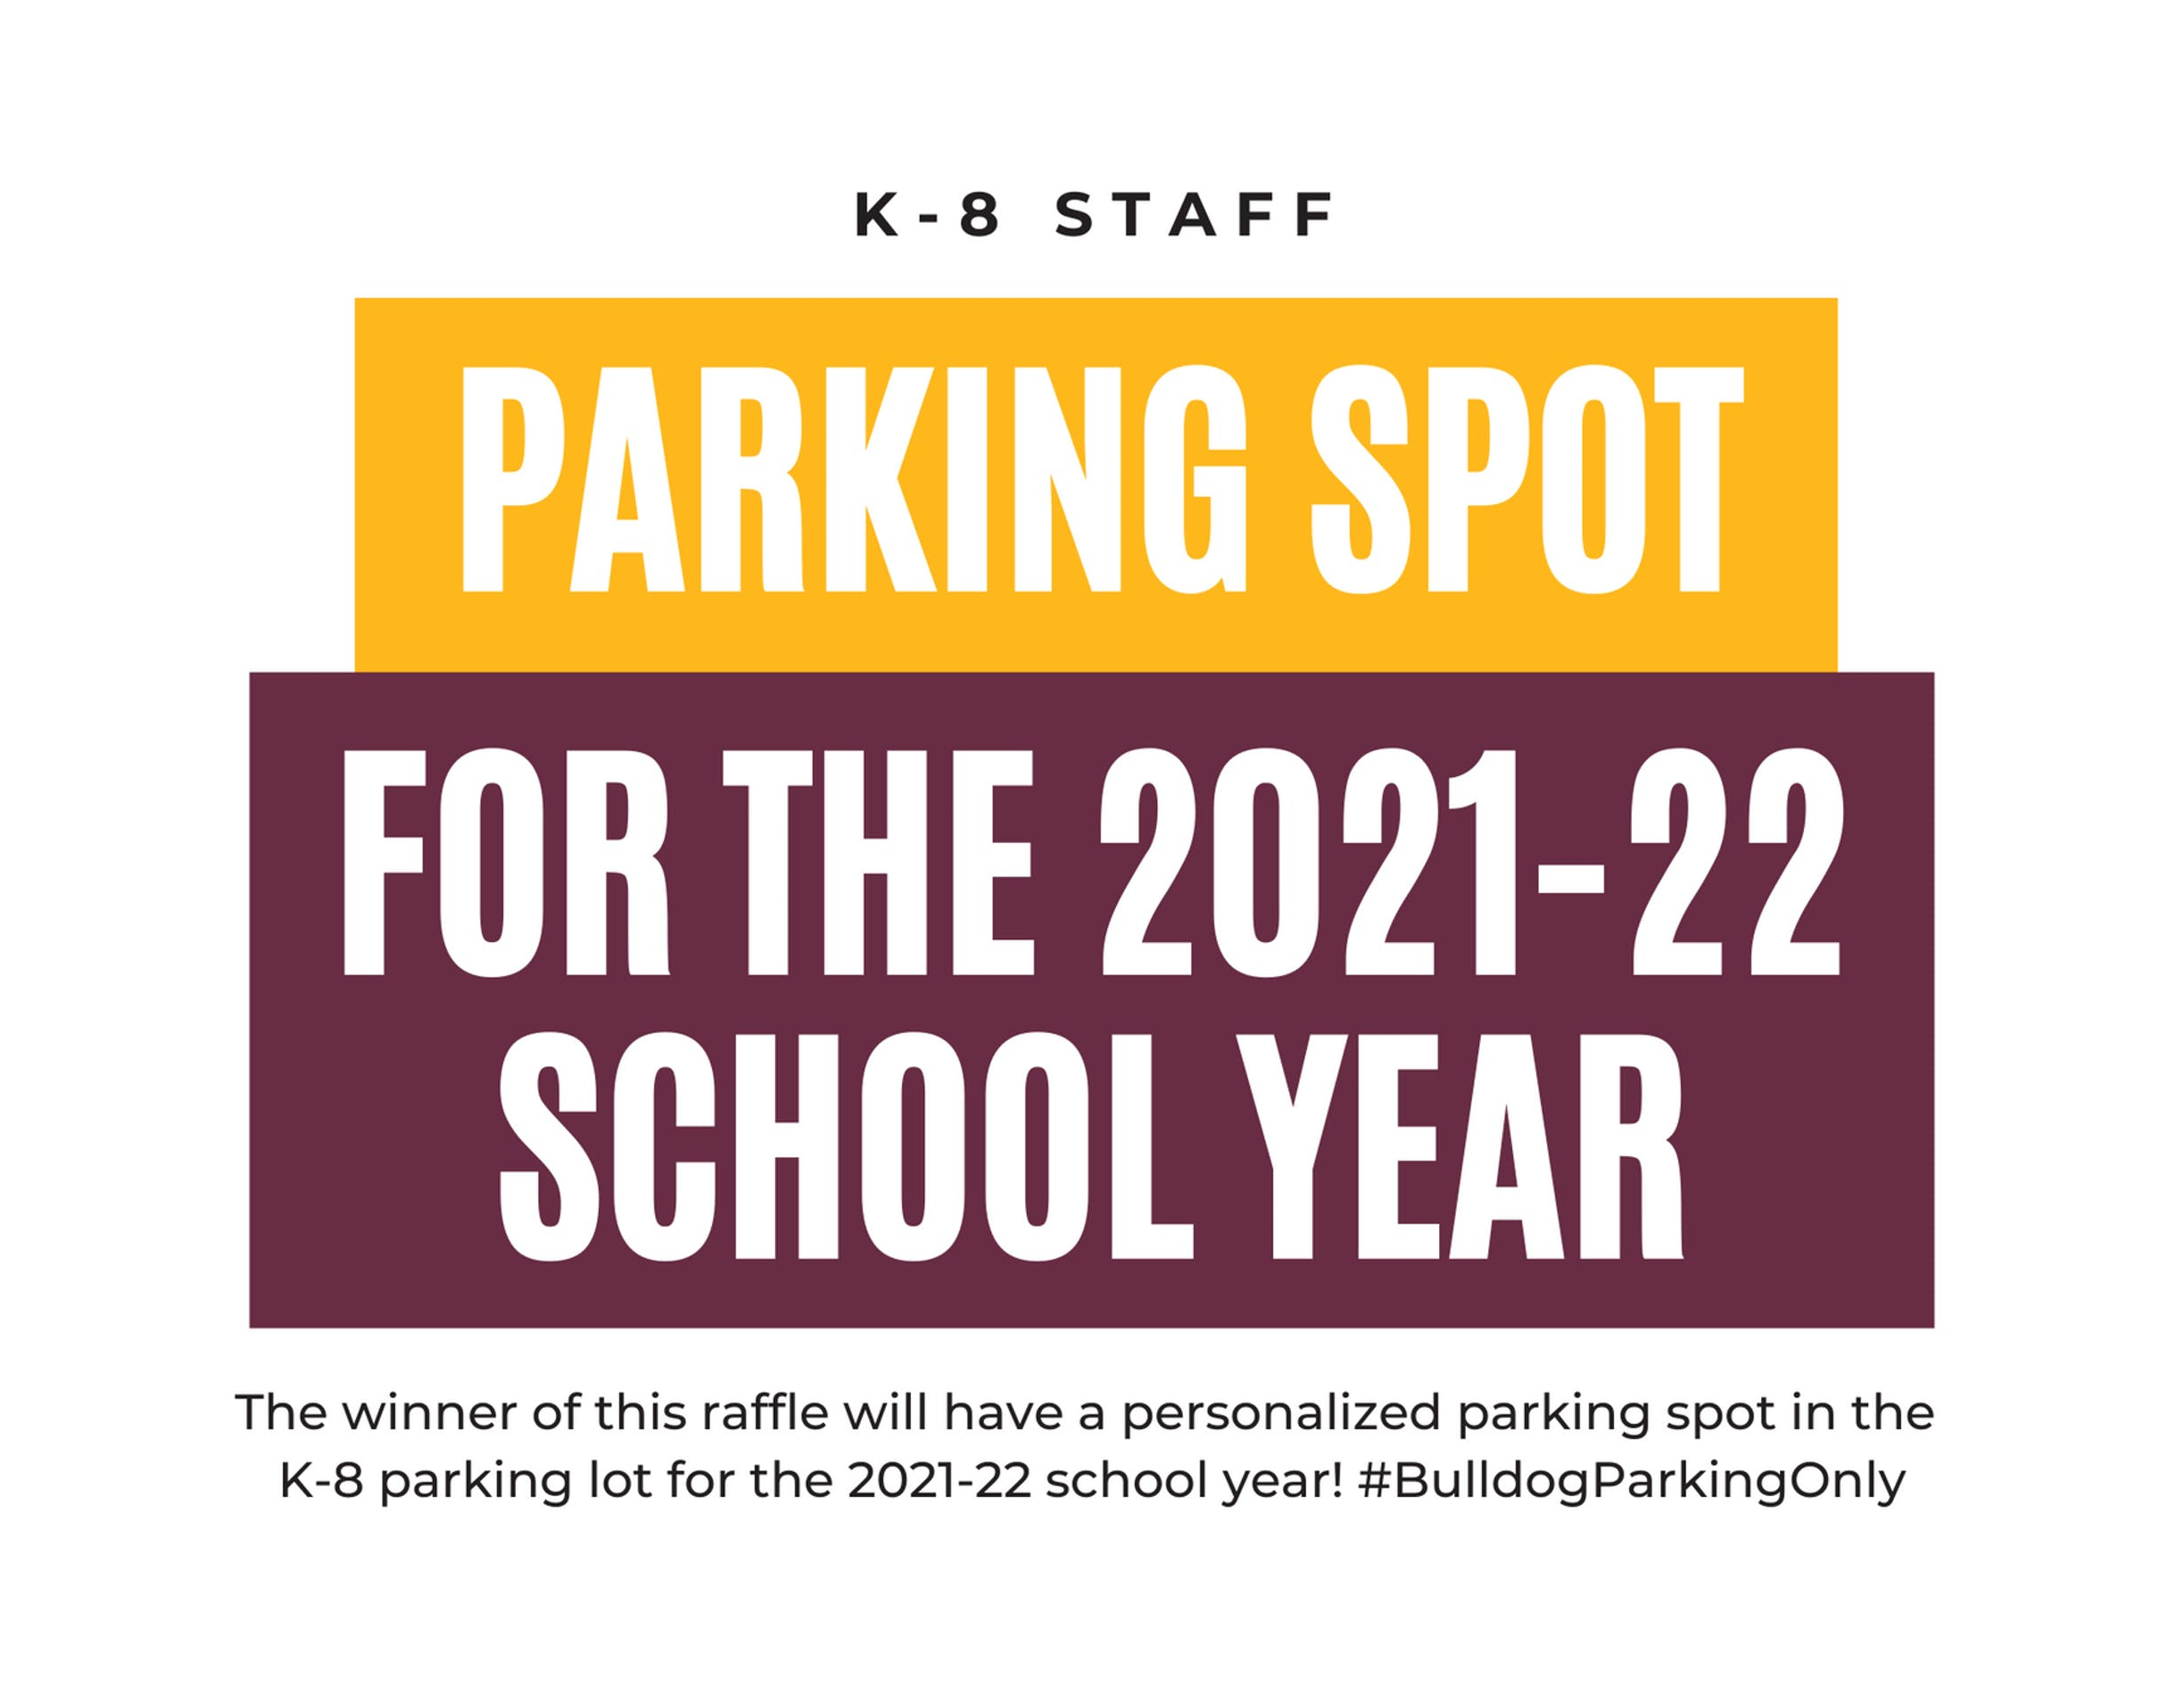 K-8 Staff Parking Spot for the 2021-2022 School Year